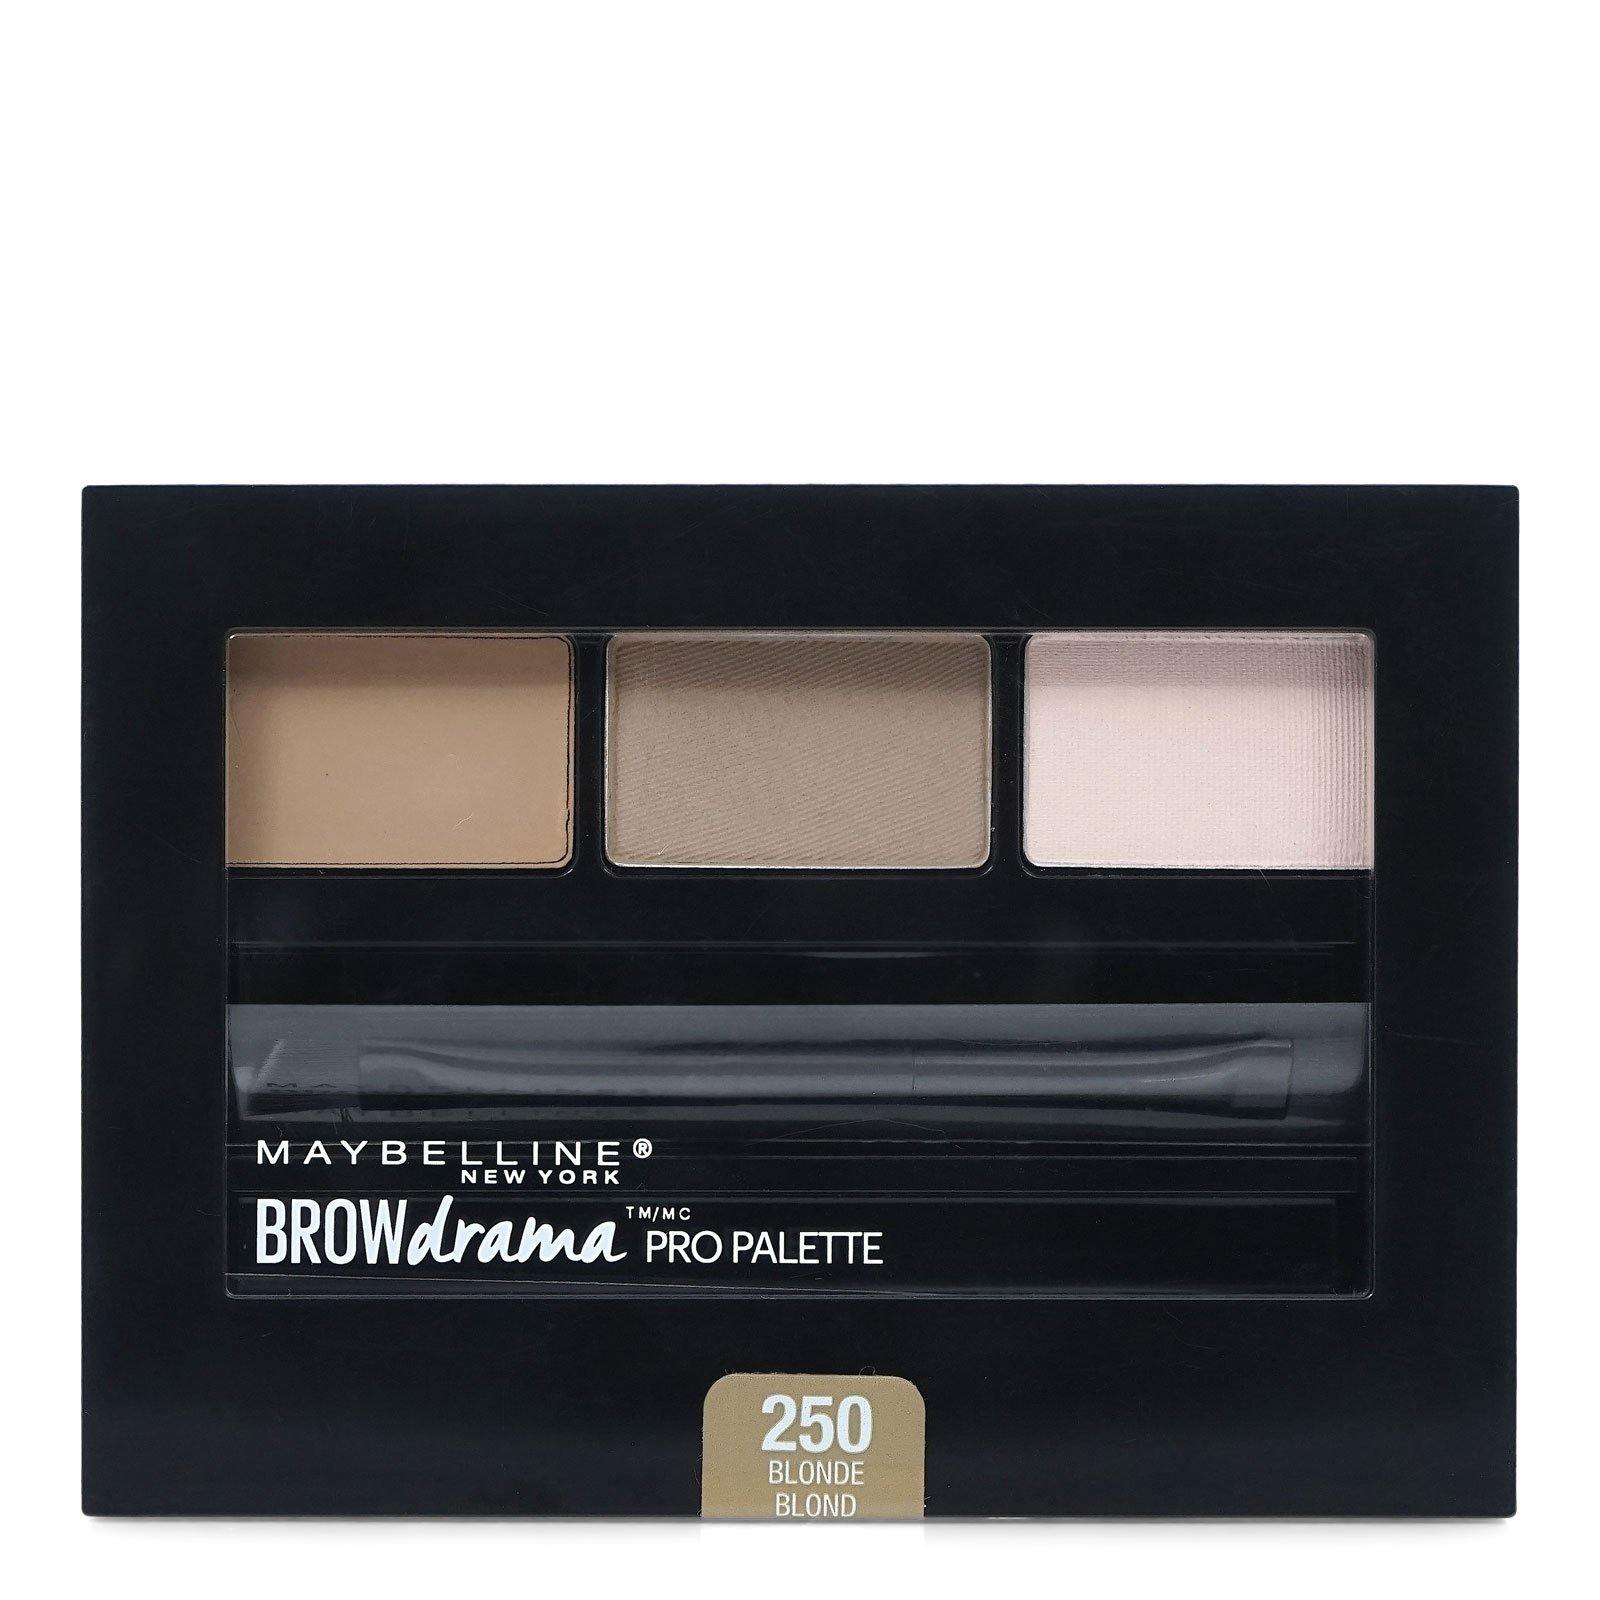 MABELLINE BROW DRAMA PRO PALETTE- BLONDE # 250 (24/cs)